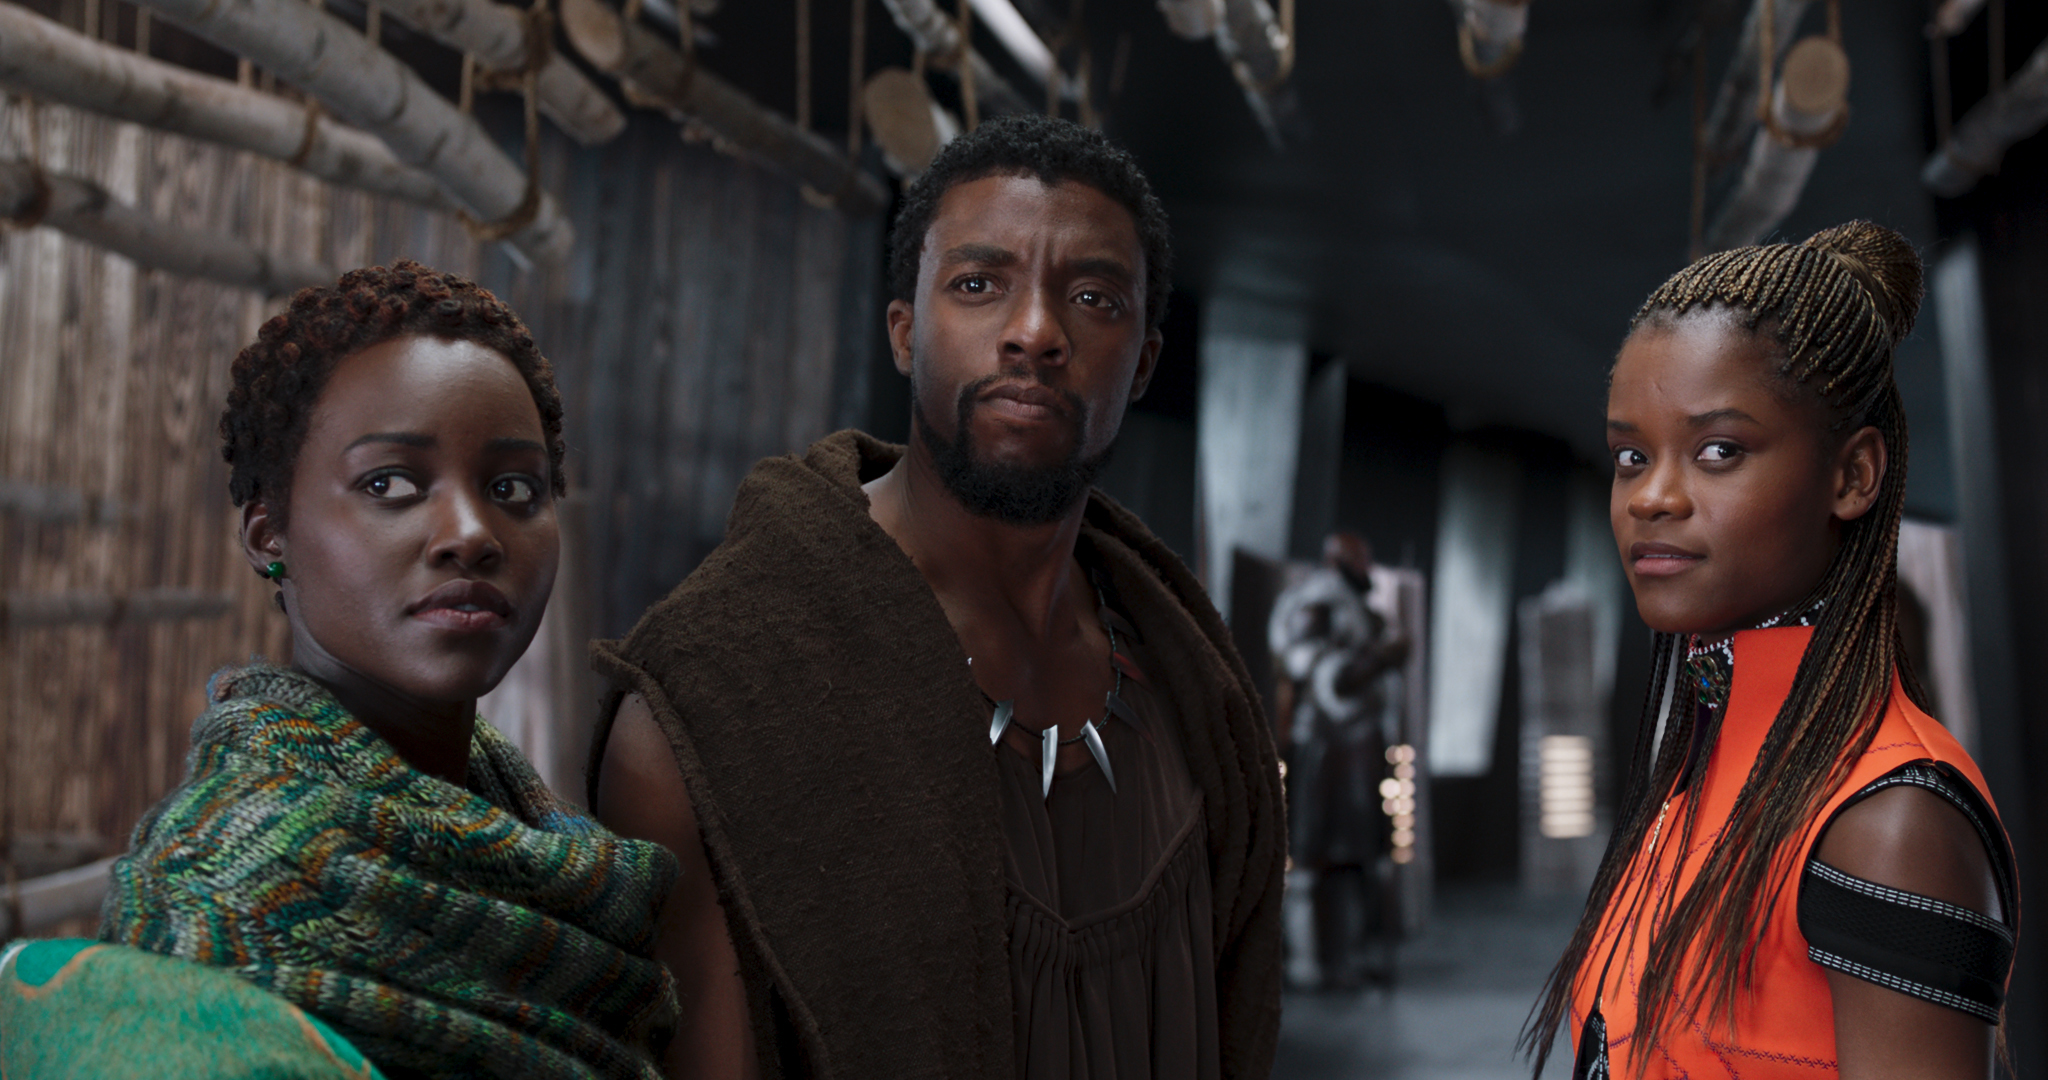 Chadwick Boseman as TChalla, Lupita Nyong'o as Nakia and Letitia Wright as Shuri